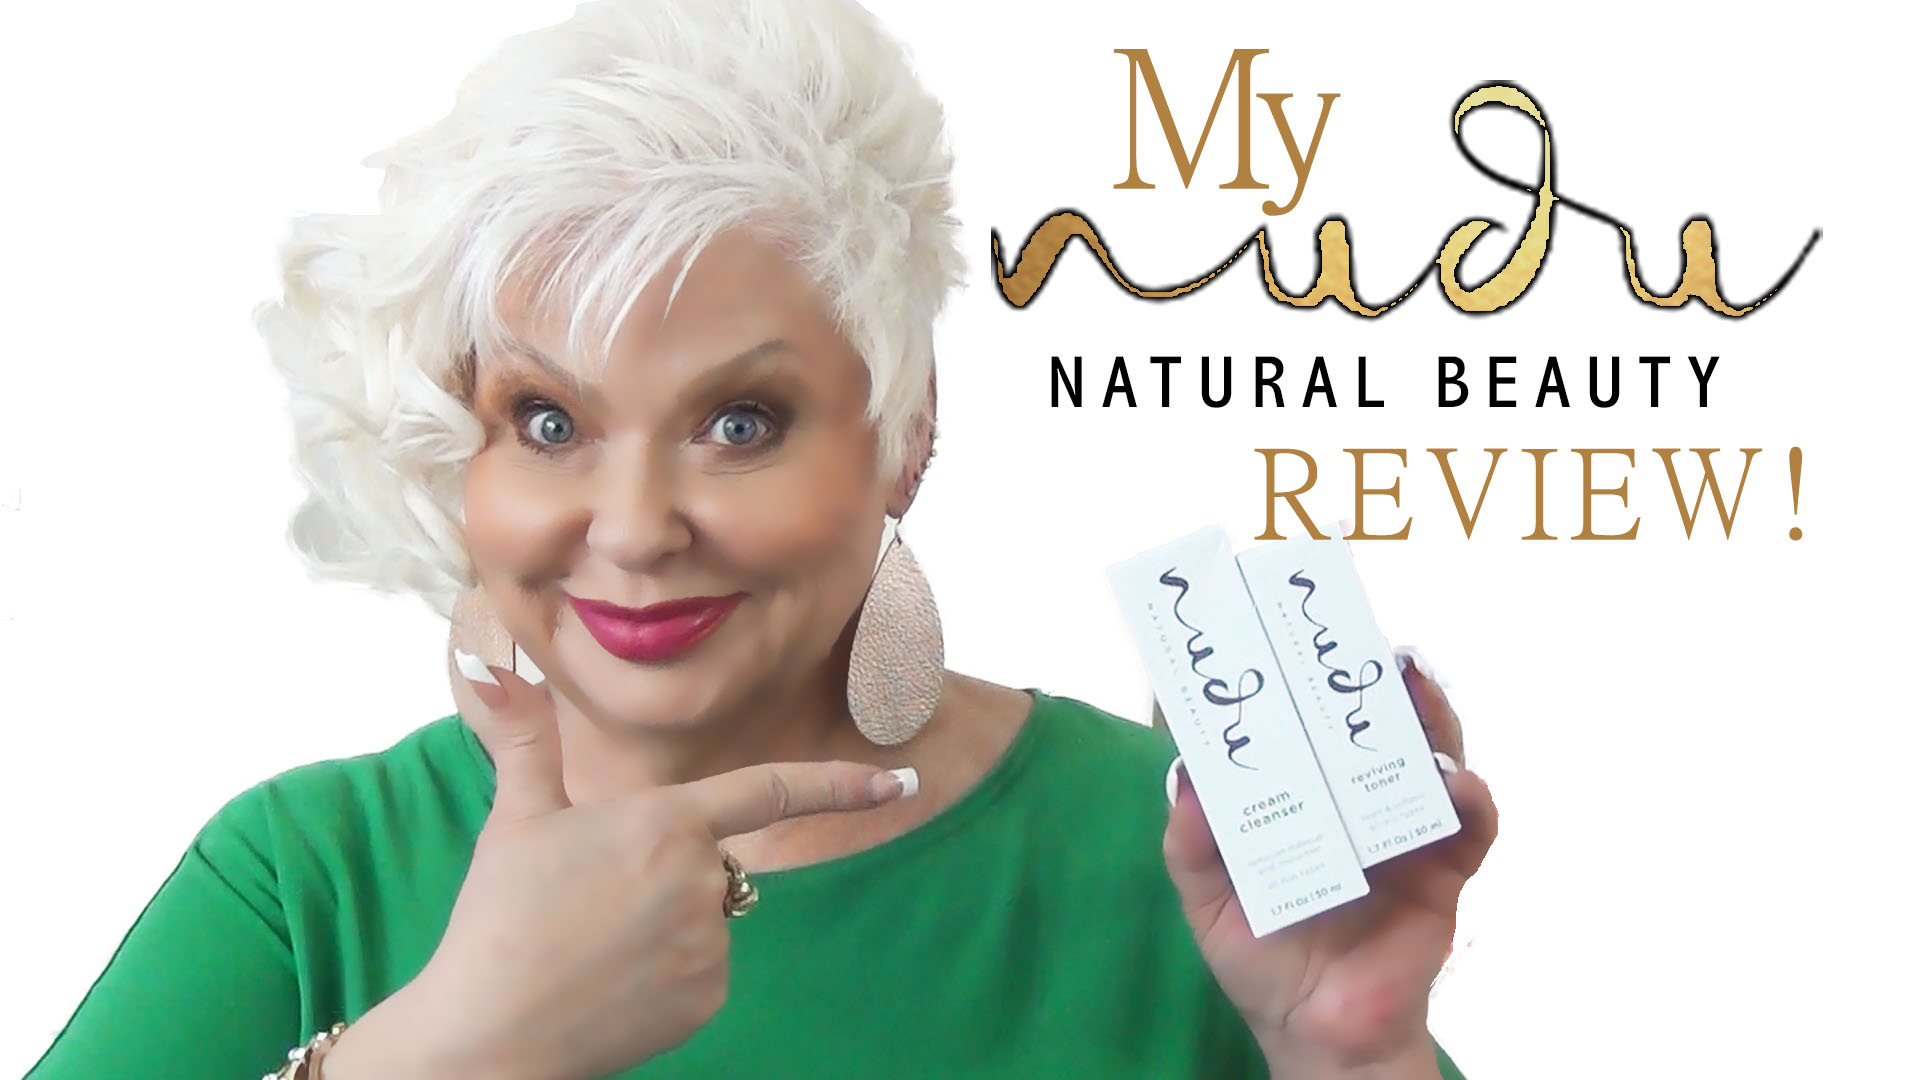 My NUDU Review: Natural Beauty for Aging Skin